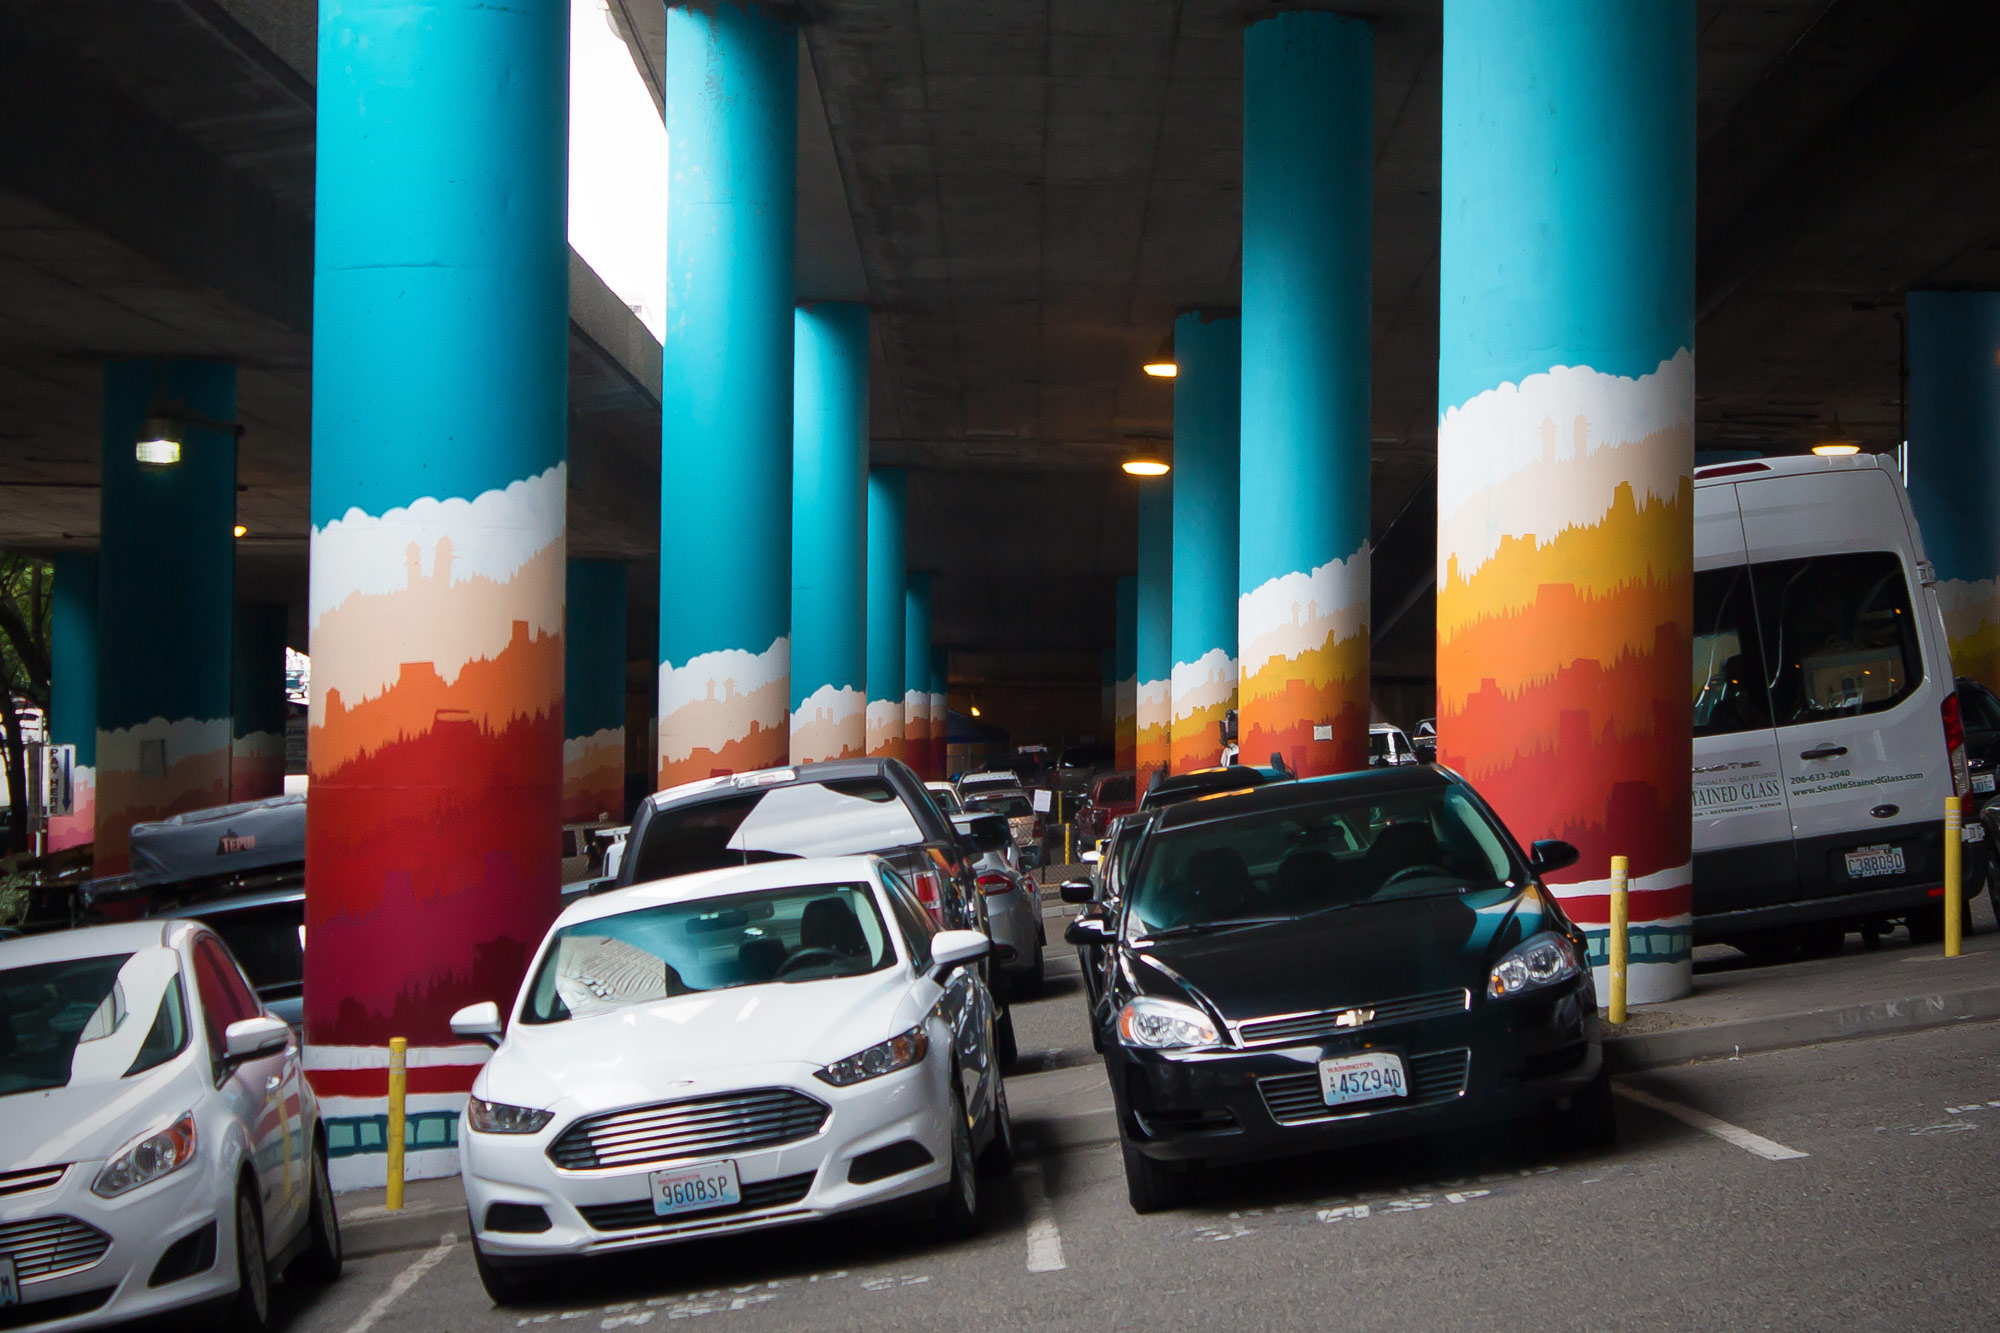 Public Art: Seattle's I-5 Column Murals - 'Sunlight Over First Hill' by Nathan Watkins